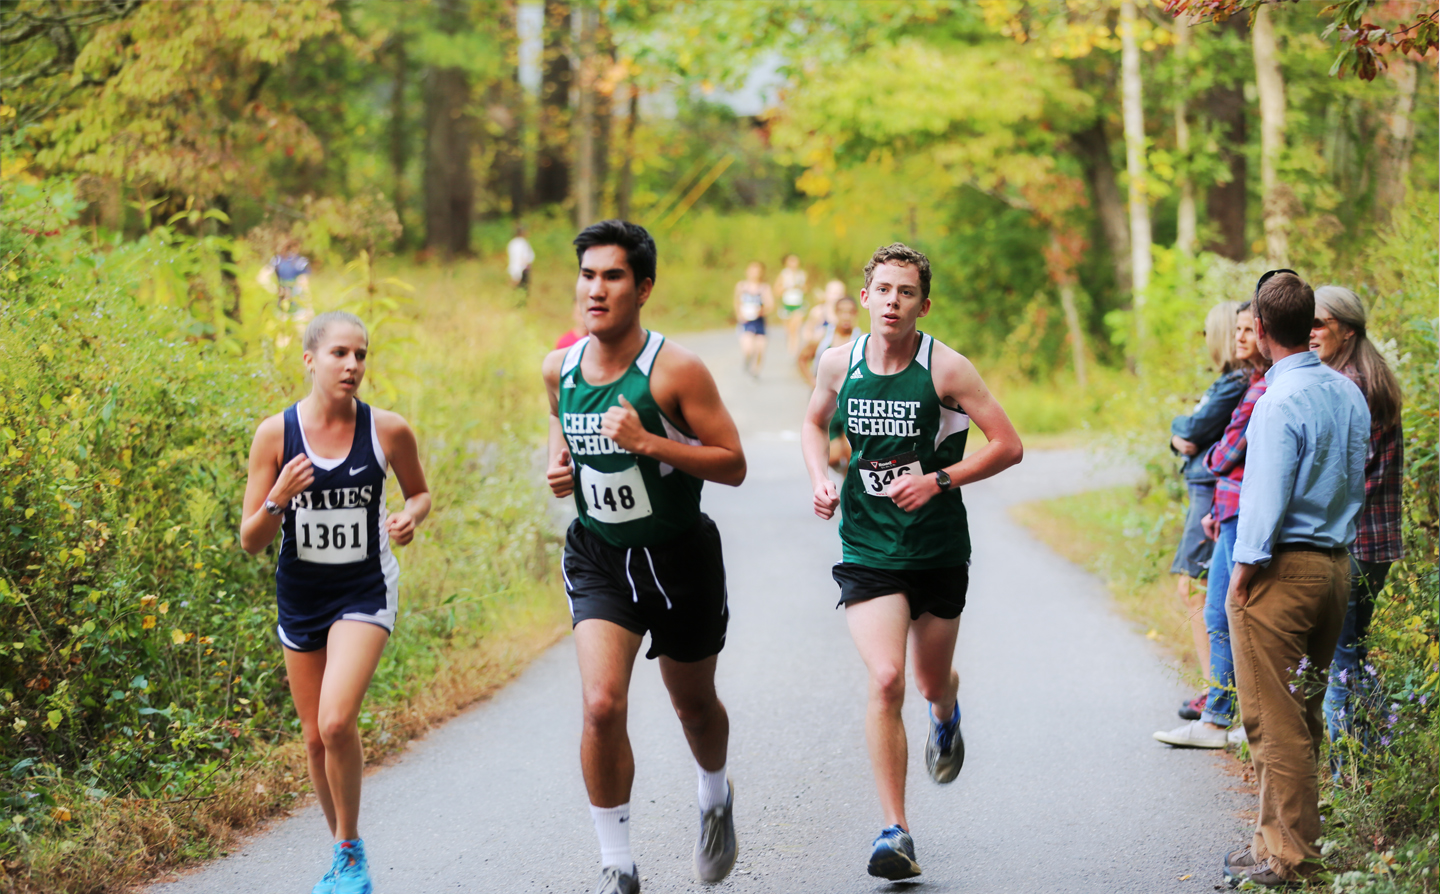 Christ School Cross Country Runners